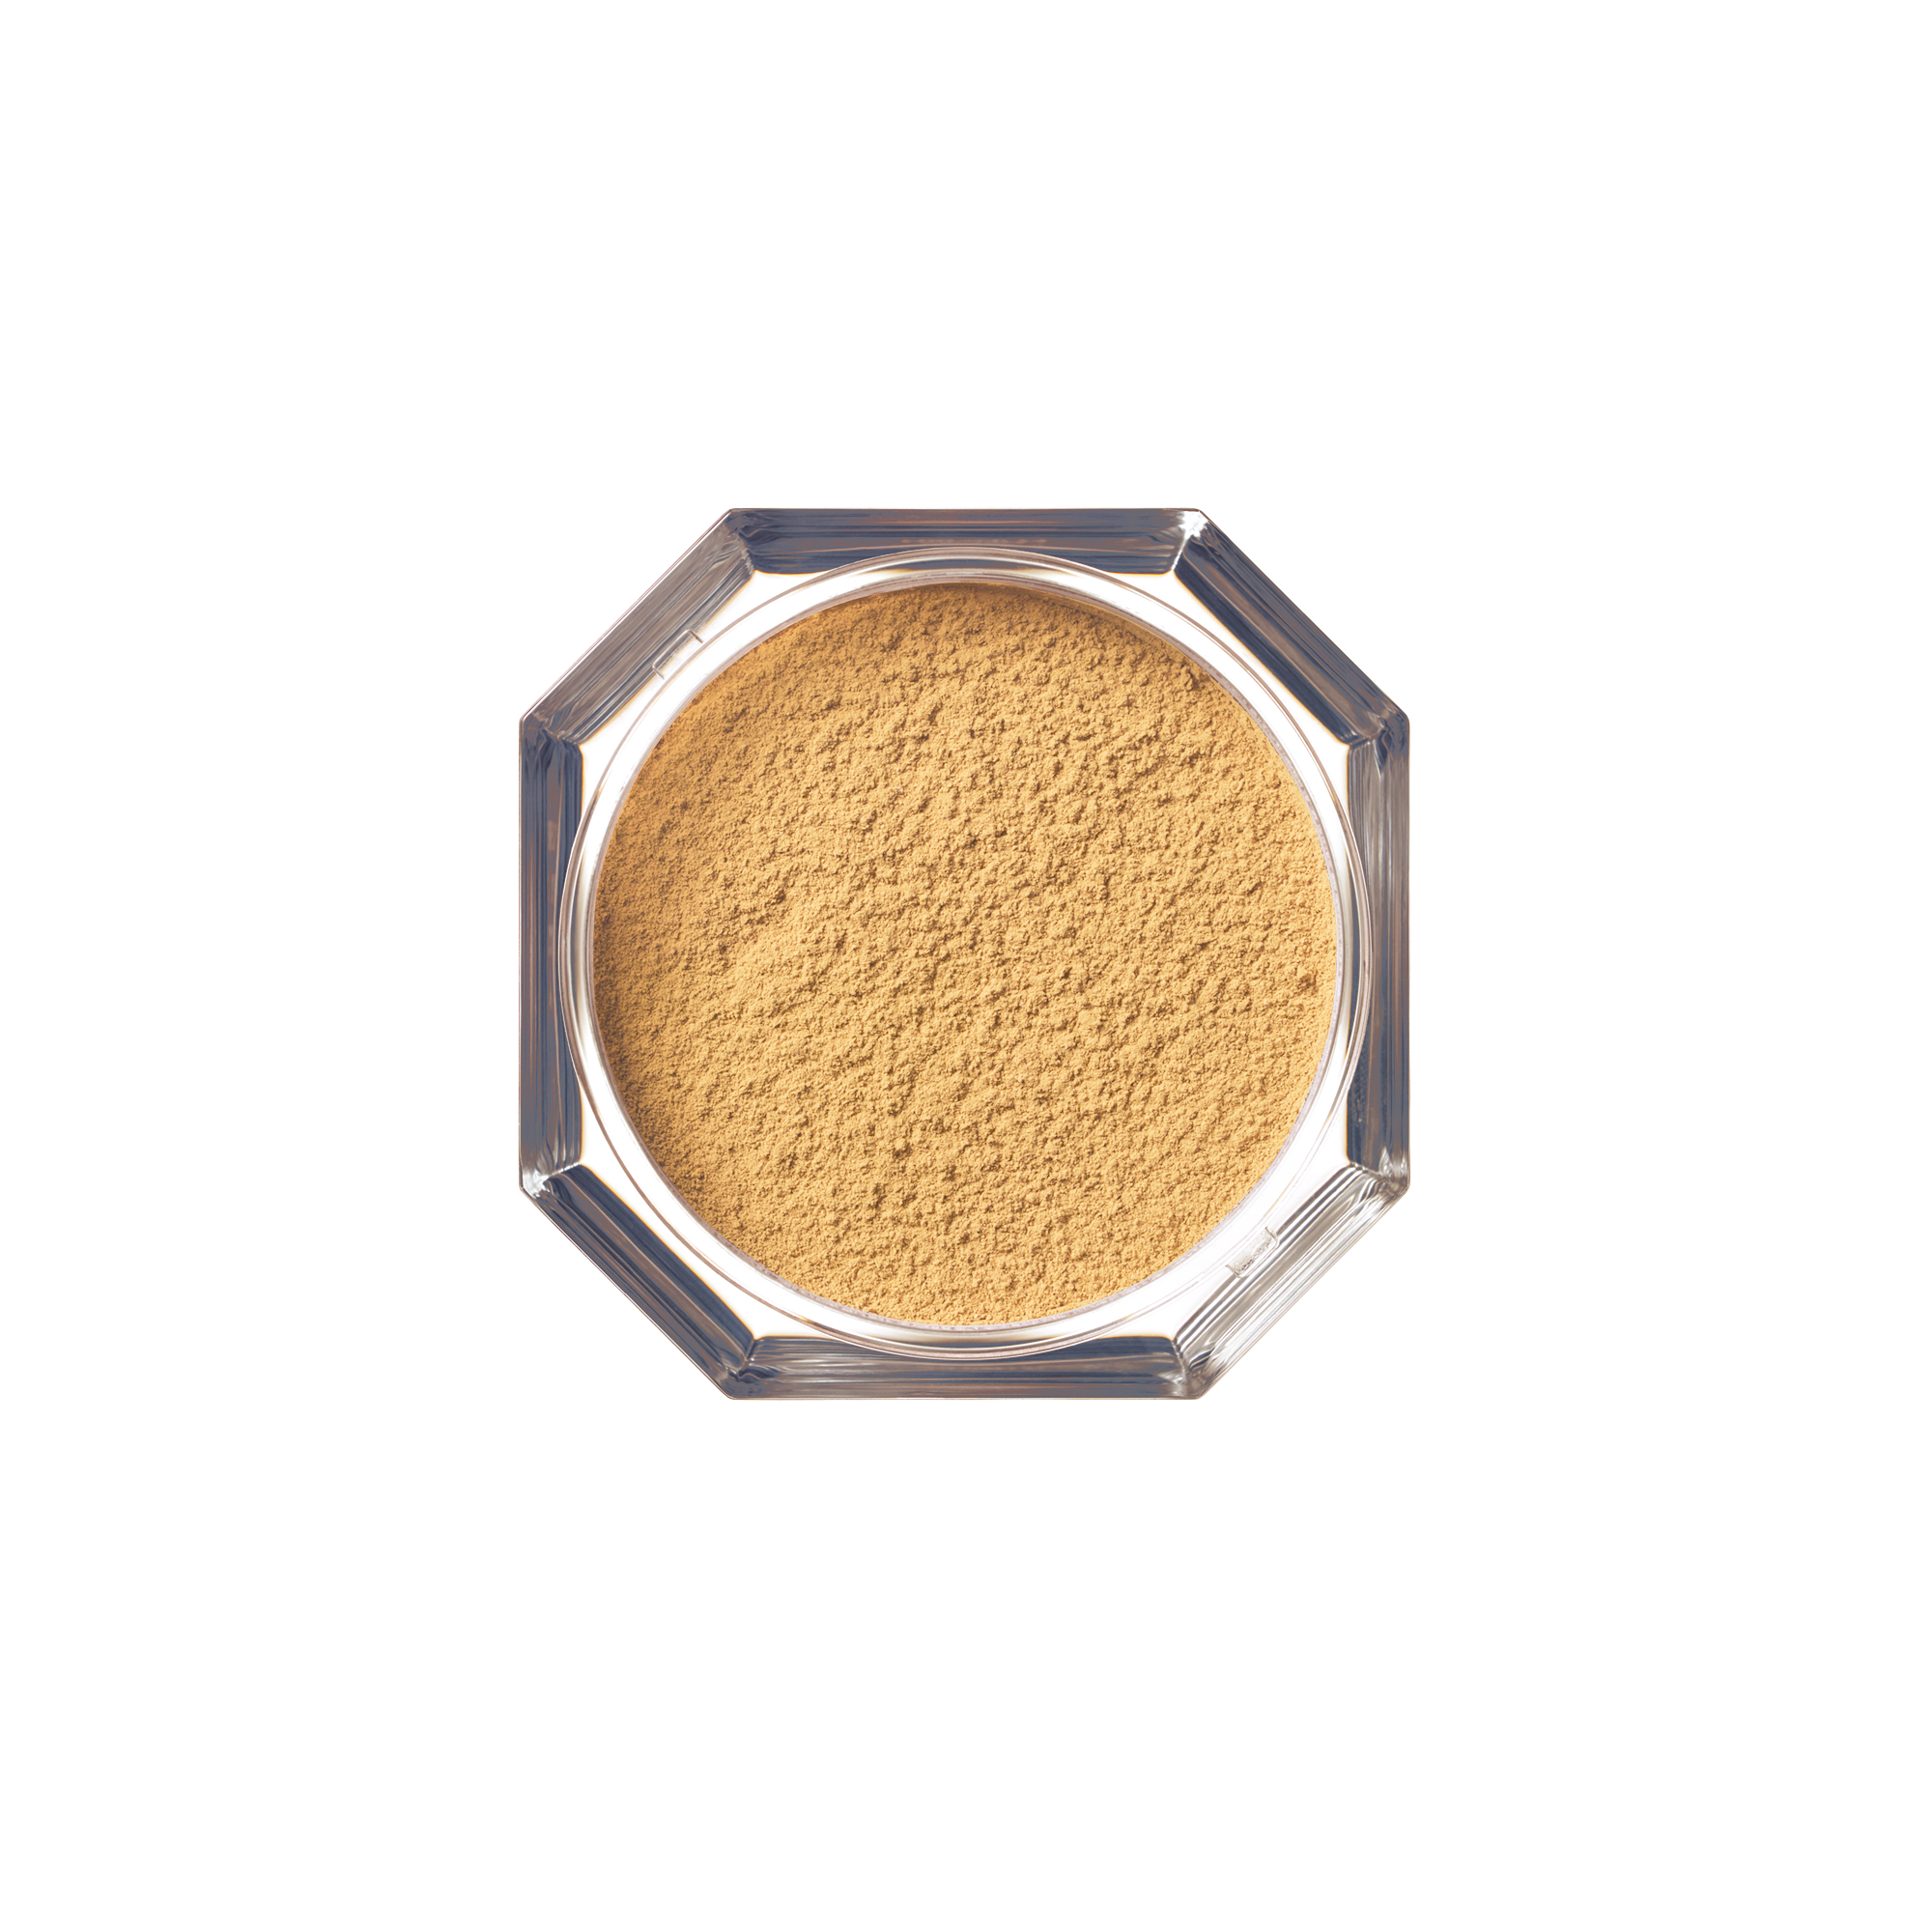 FB Pro Filt'r Instant Retouch Setting Powder - Honey - AED 158